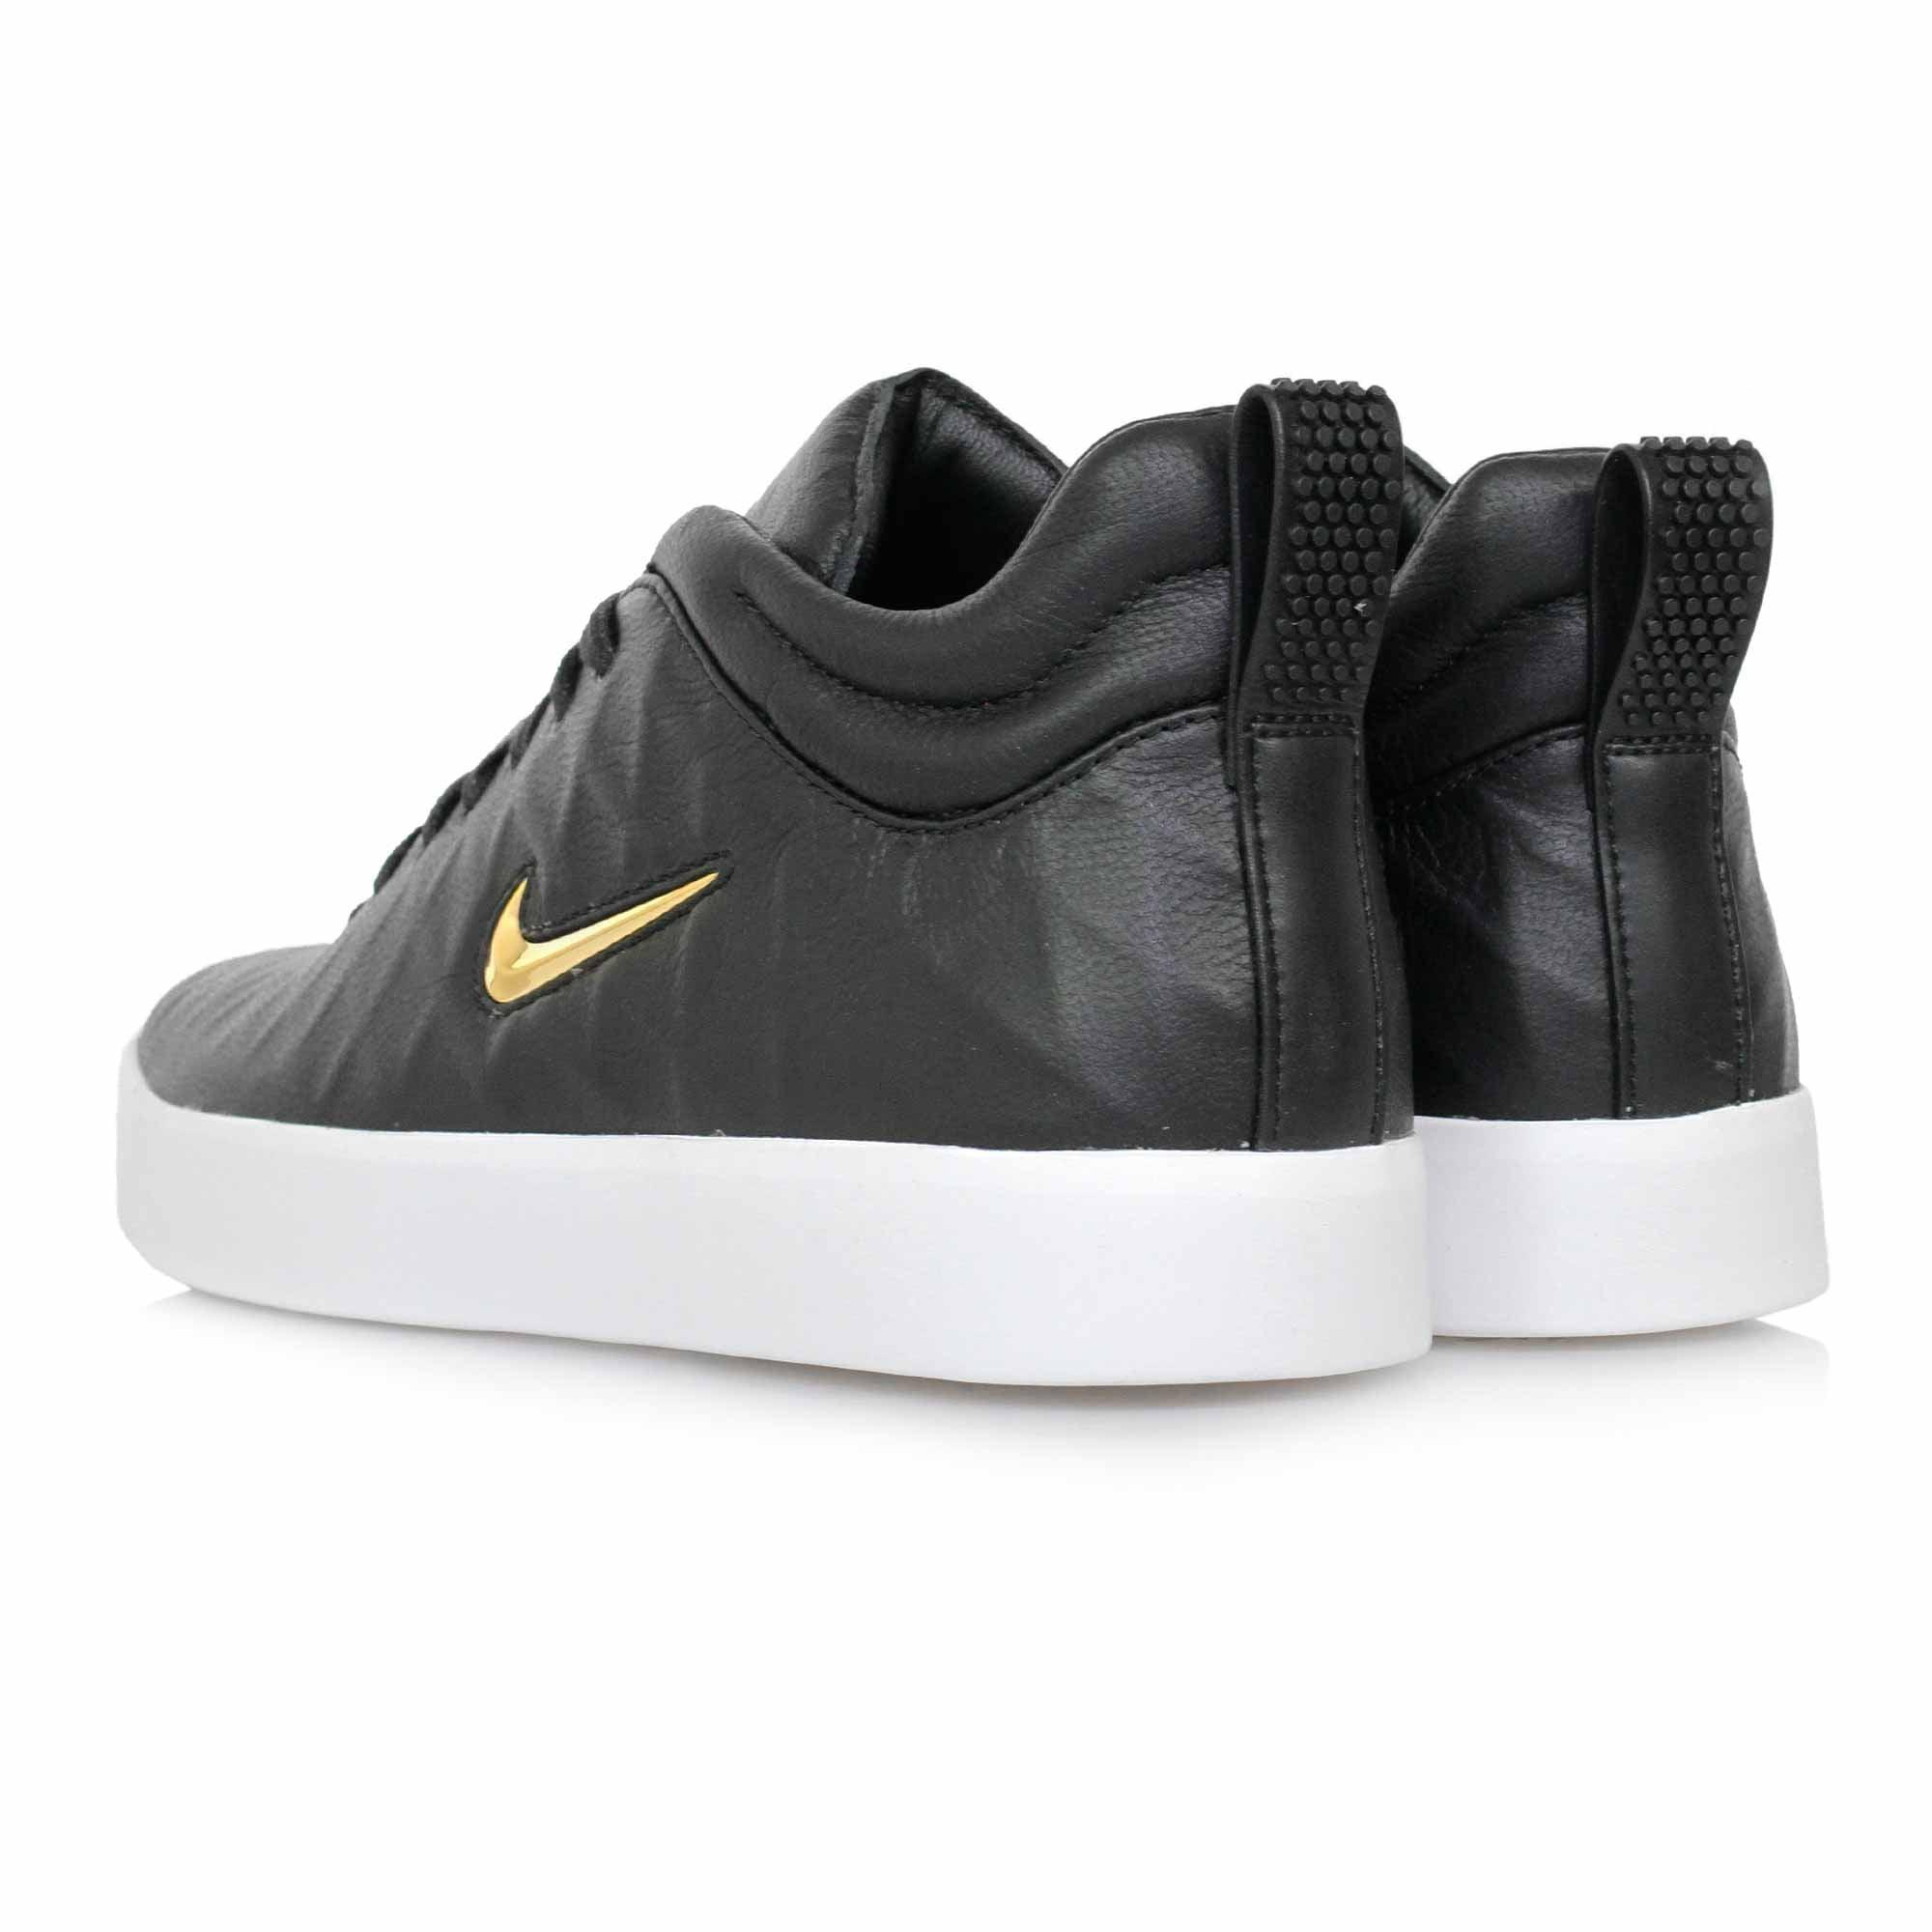 Goat Leather Nike Shoes Black And Gold